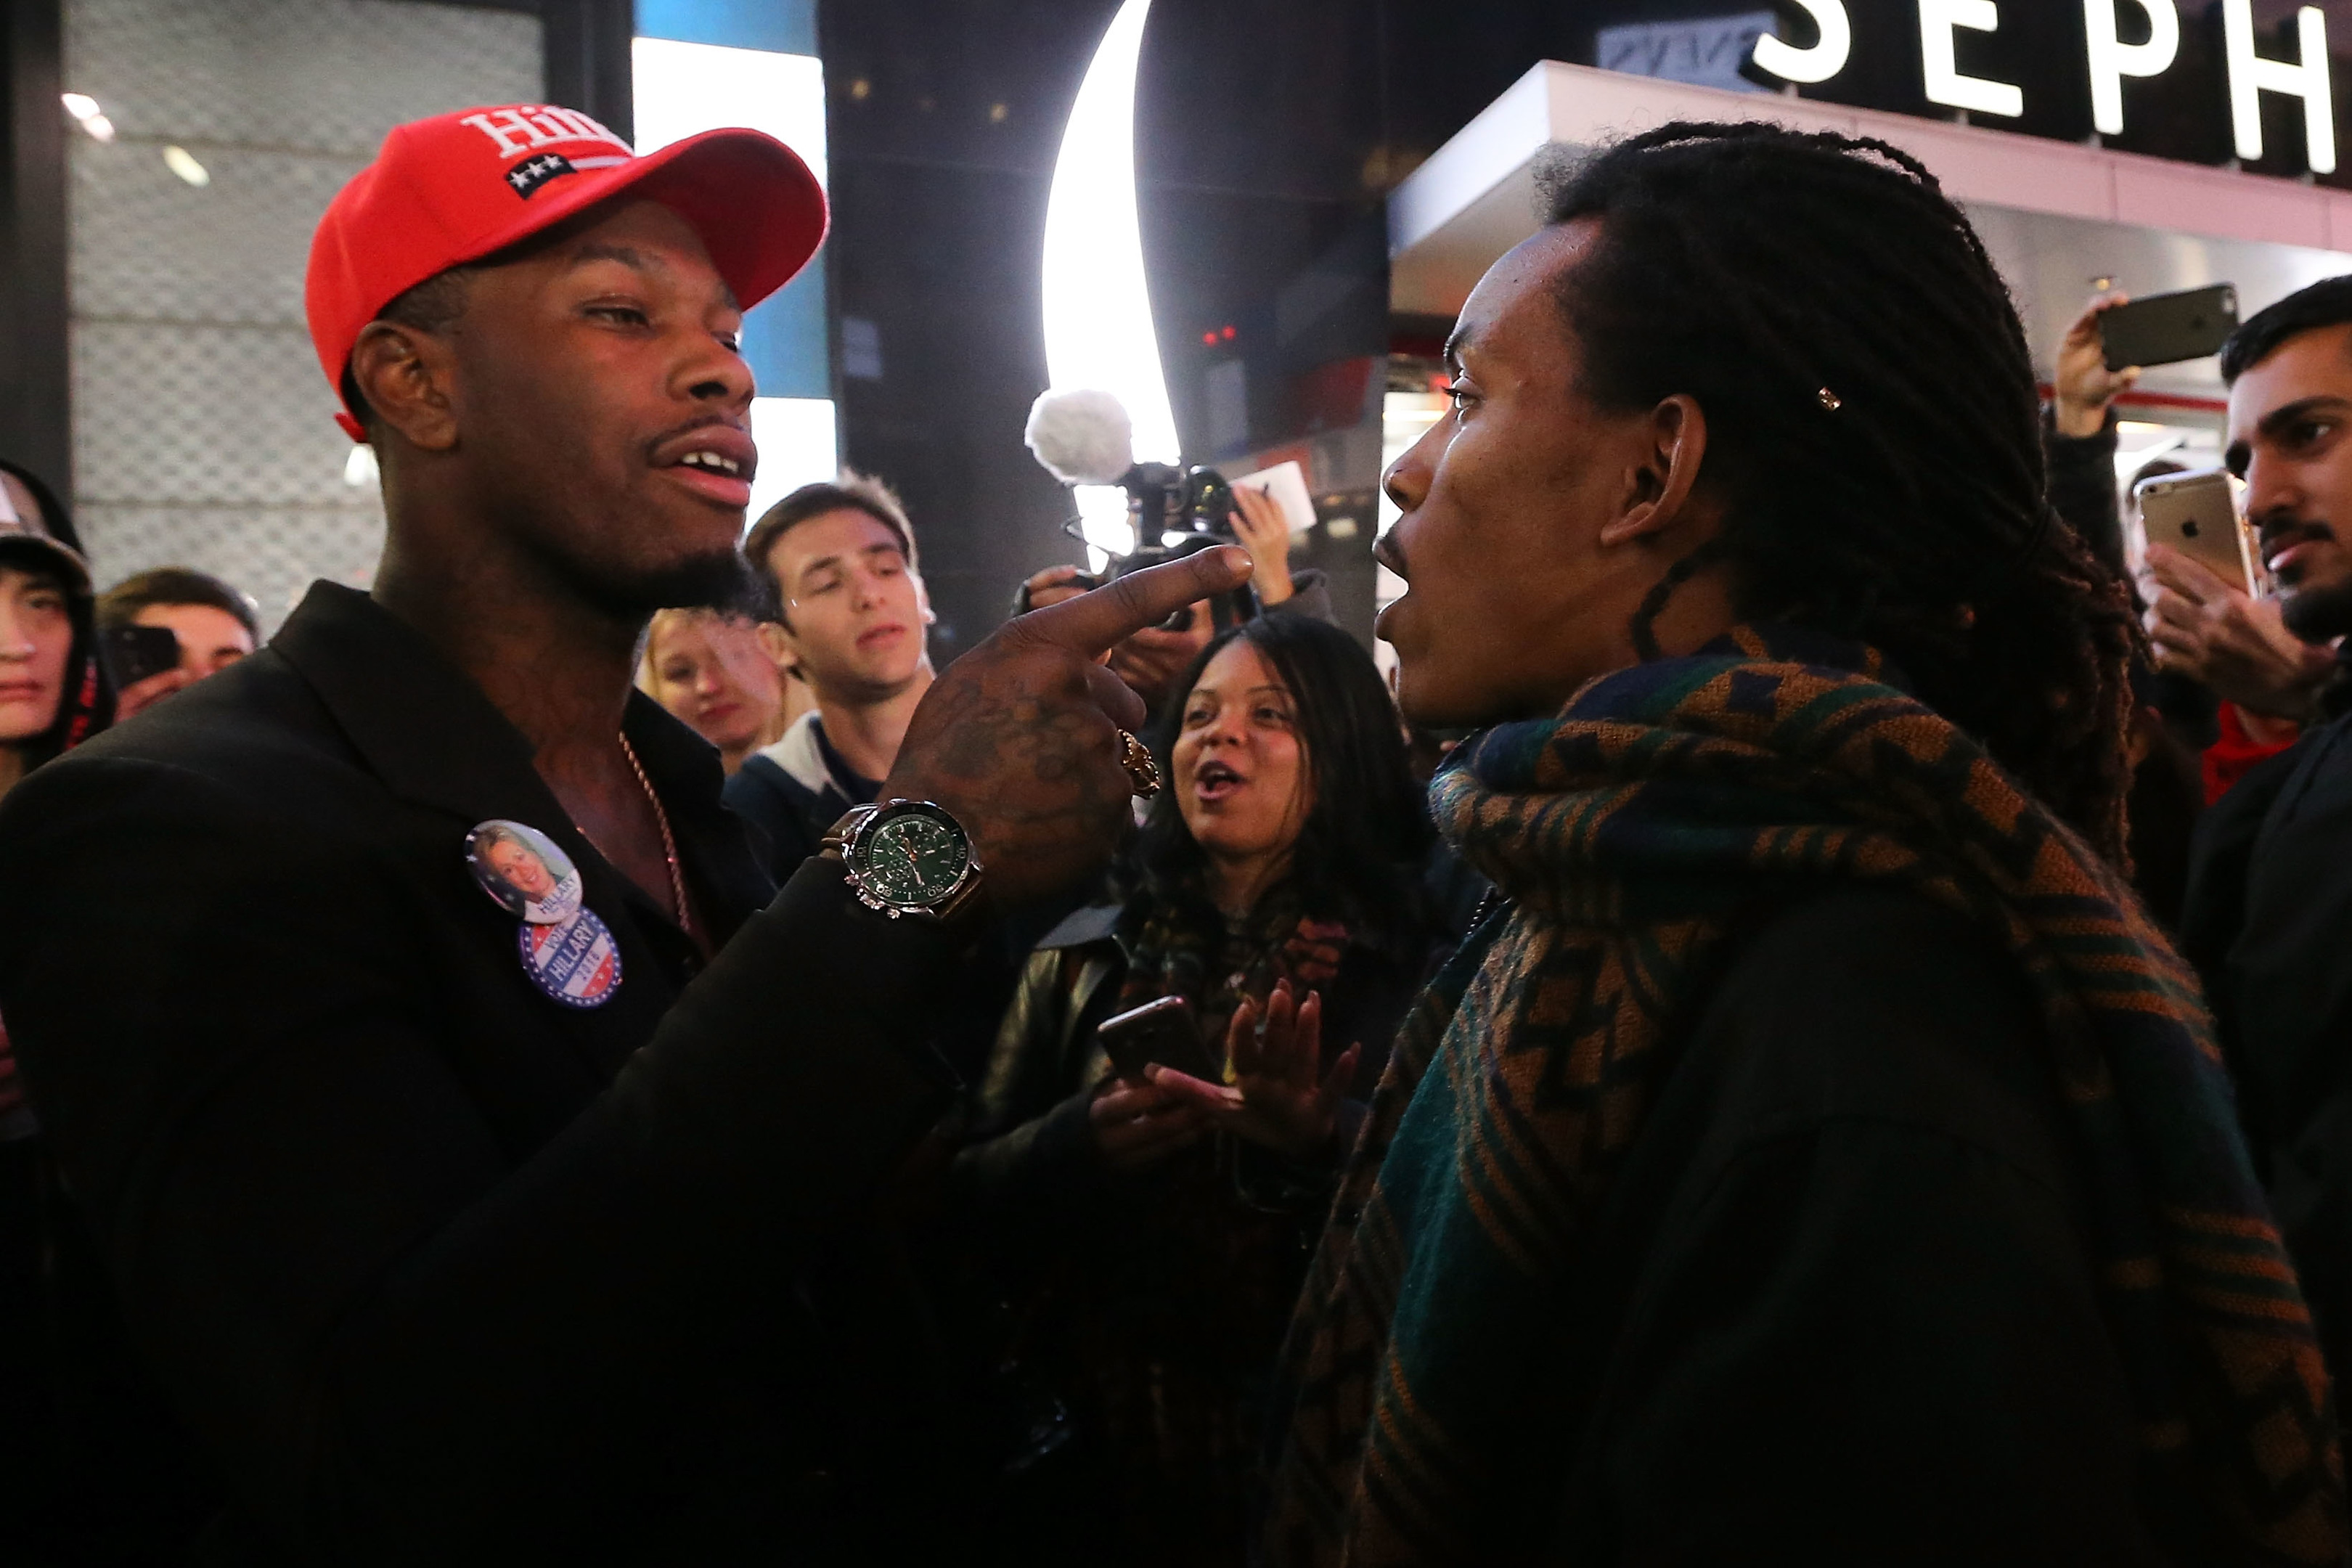 Donald Trump supporters and Hillary Clinton supporters clash outside in Times Square